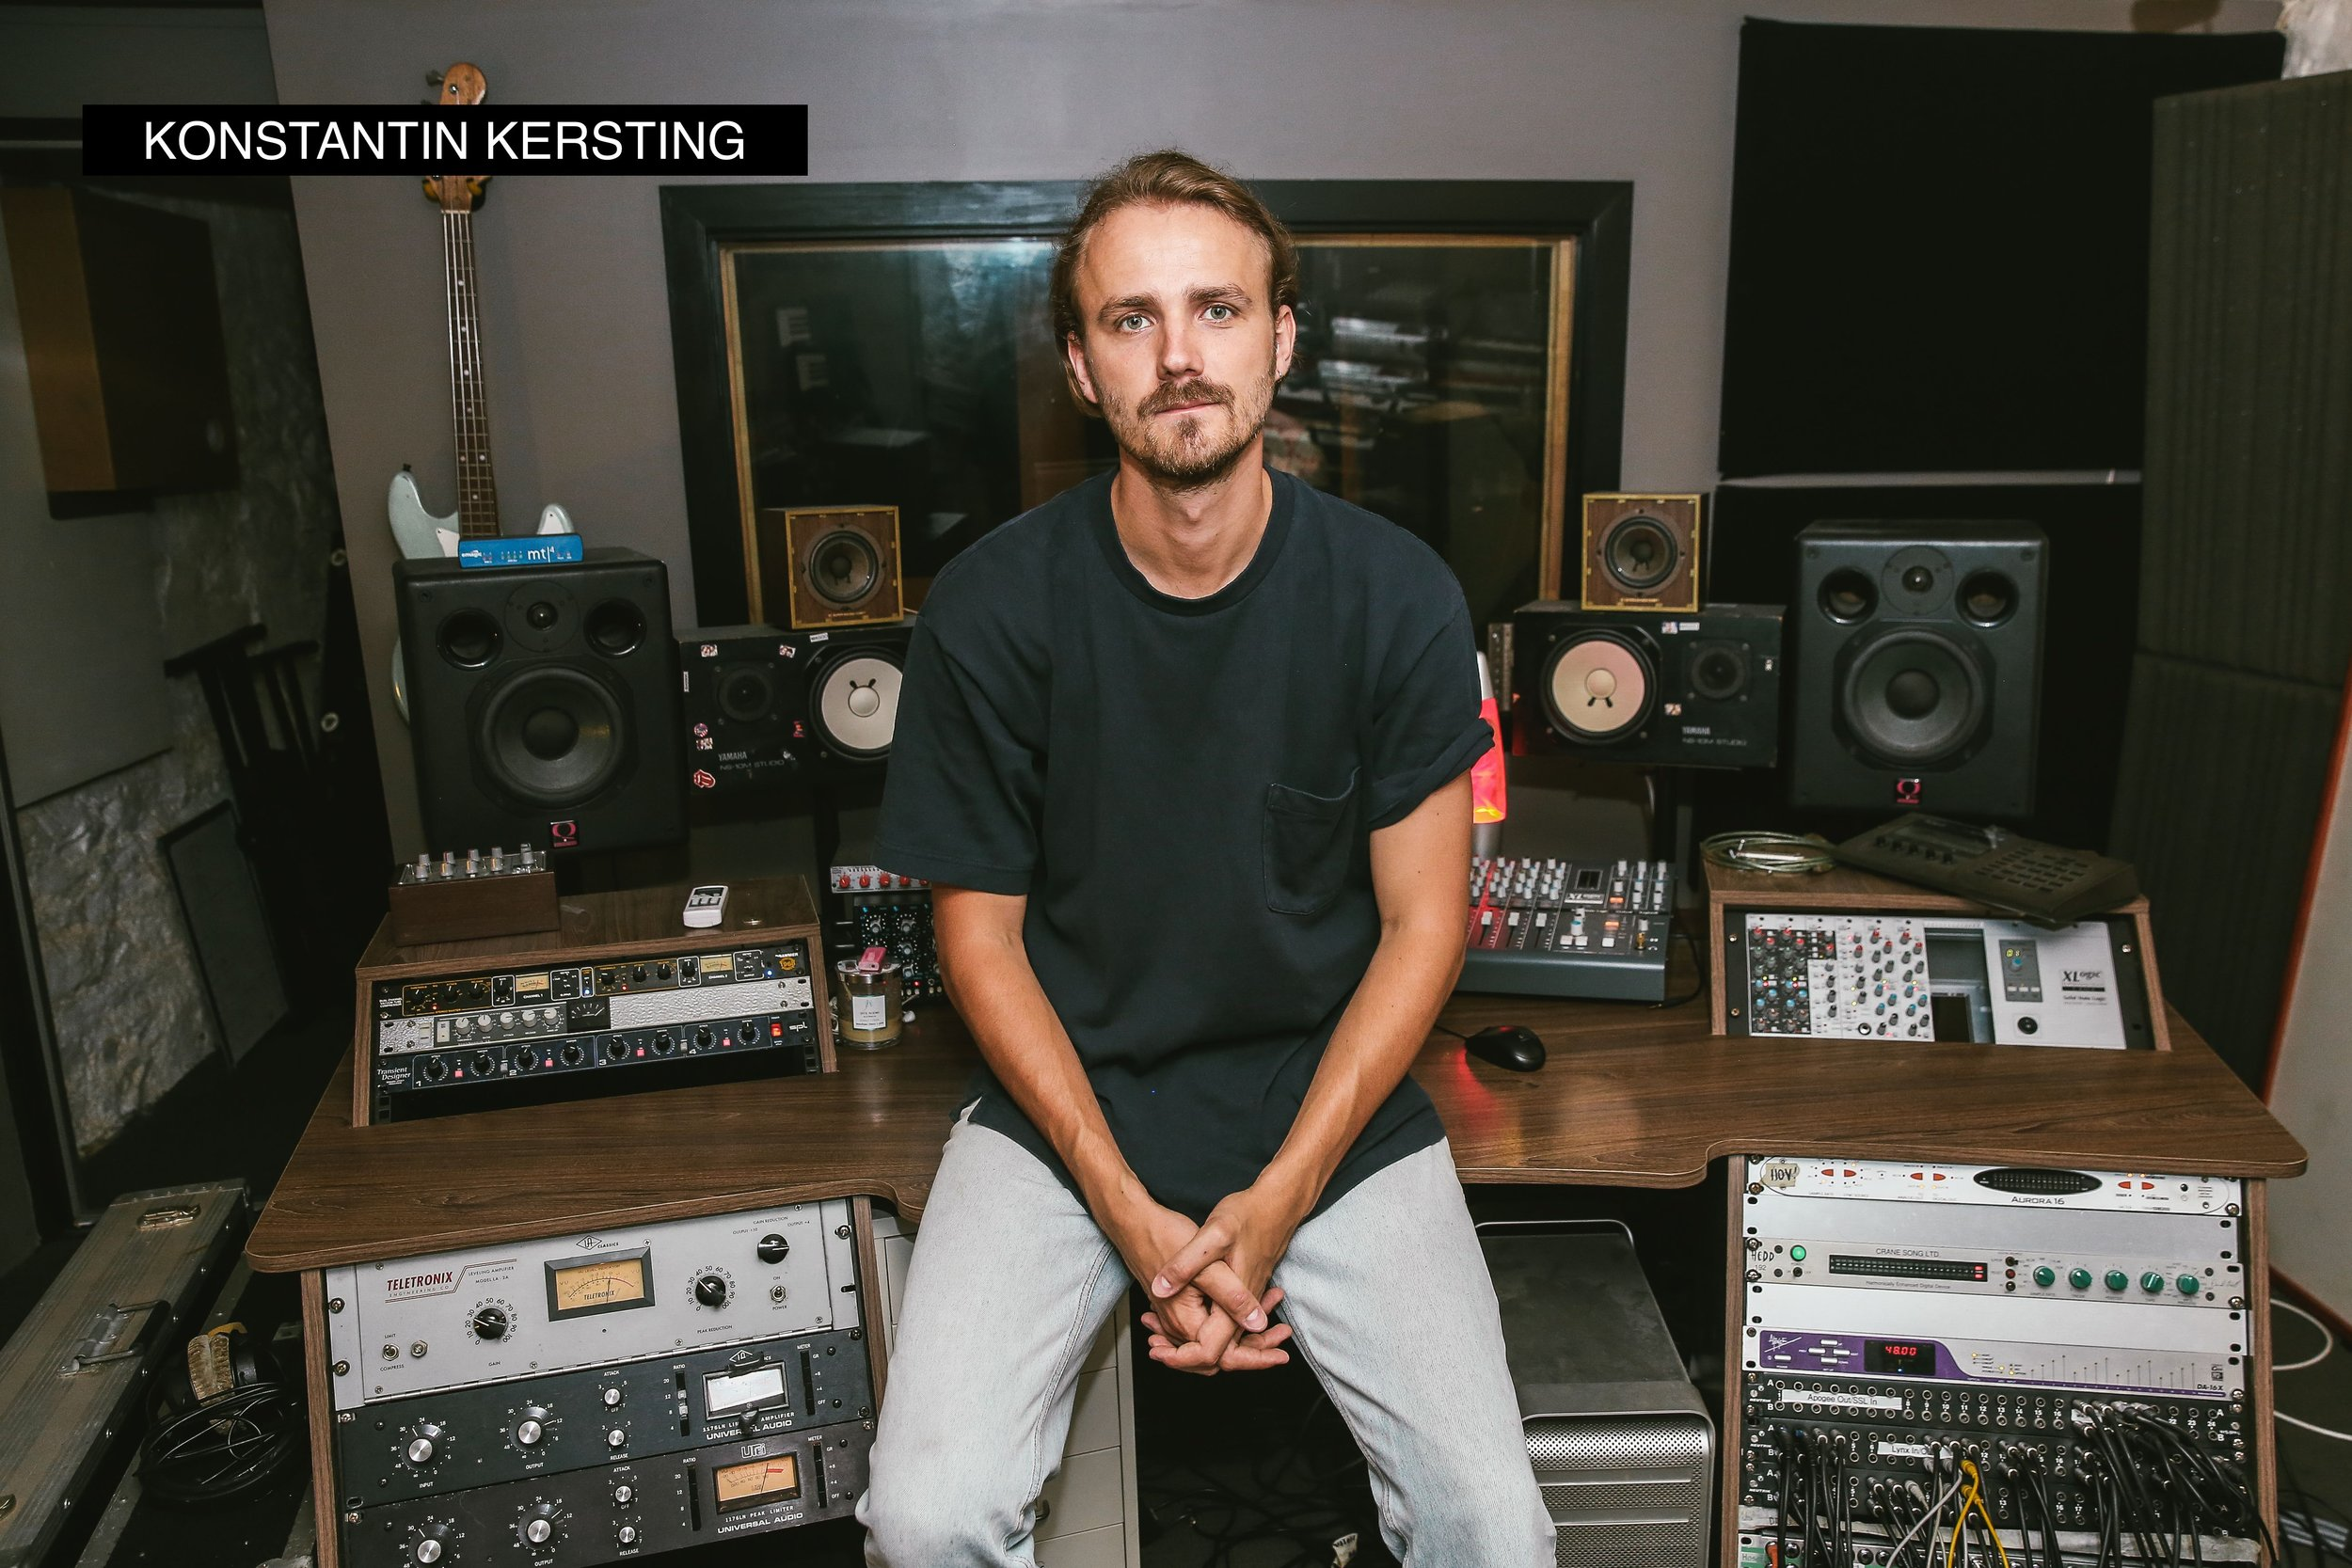 Across the range of different projects Konstantin Kersting has produced, engineered, written and mixed, there's one constant—his philosophy of working together with the artist.  To Kersting, the role of a producer is to help bring an artistic vision to life. It's about building a relaxed environment, developing good relationships and facilitating creativity—to make the best record possible.  Kersting first became obsessed with production while studying at uni, dreaming of replicating the sounds of the music that wowed him. But he got his start in music way before that, learning violin via the Suzuki method when he was four years old, before picking up bass guitar and double bass in his teens and playing with orchestras and jazz ensembles around his hometown of Berlin.  After relocating to Australia, Kersting earned a Bachelor of Music from QUT and then started on his production dream, working as an in-house sound engineer at Airlock Studios, under the renowned producer Yanto Browning. He picked up tips and tricks from nationally and internationally acclaimed producers Paul McKercher, David Schuler, Mirko Vogel, Paul Dempsey and Tom Iansek.  Since the start of his career, Kersting has worked across a range of different genres for a range of different artists, including: The Jungle Giants, The Church, Mallrat, WAXX, The Belligerents, Tia Gostelow & Moses Gunn Collective.